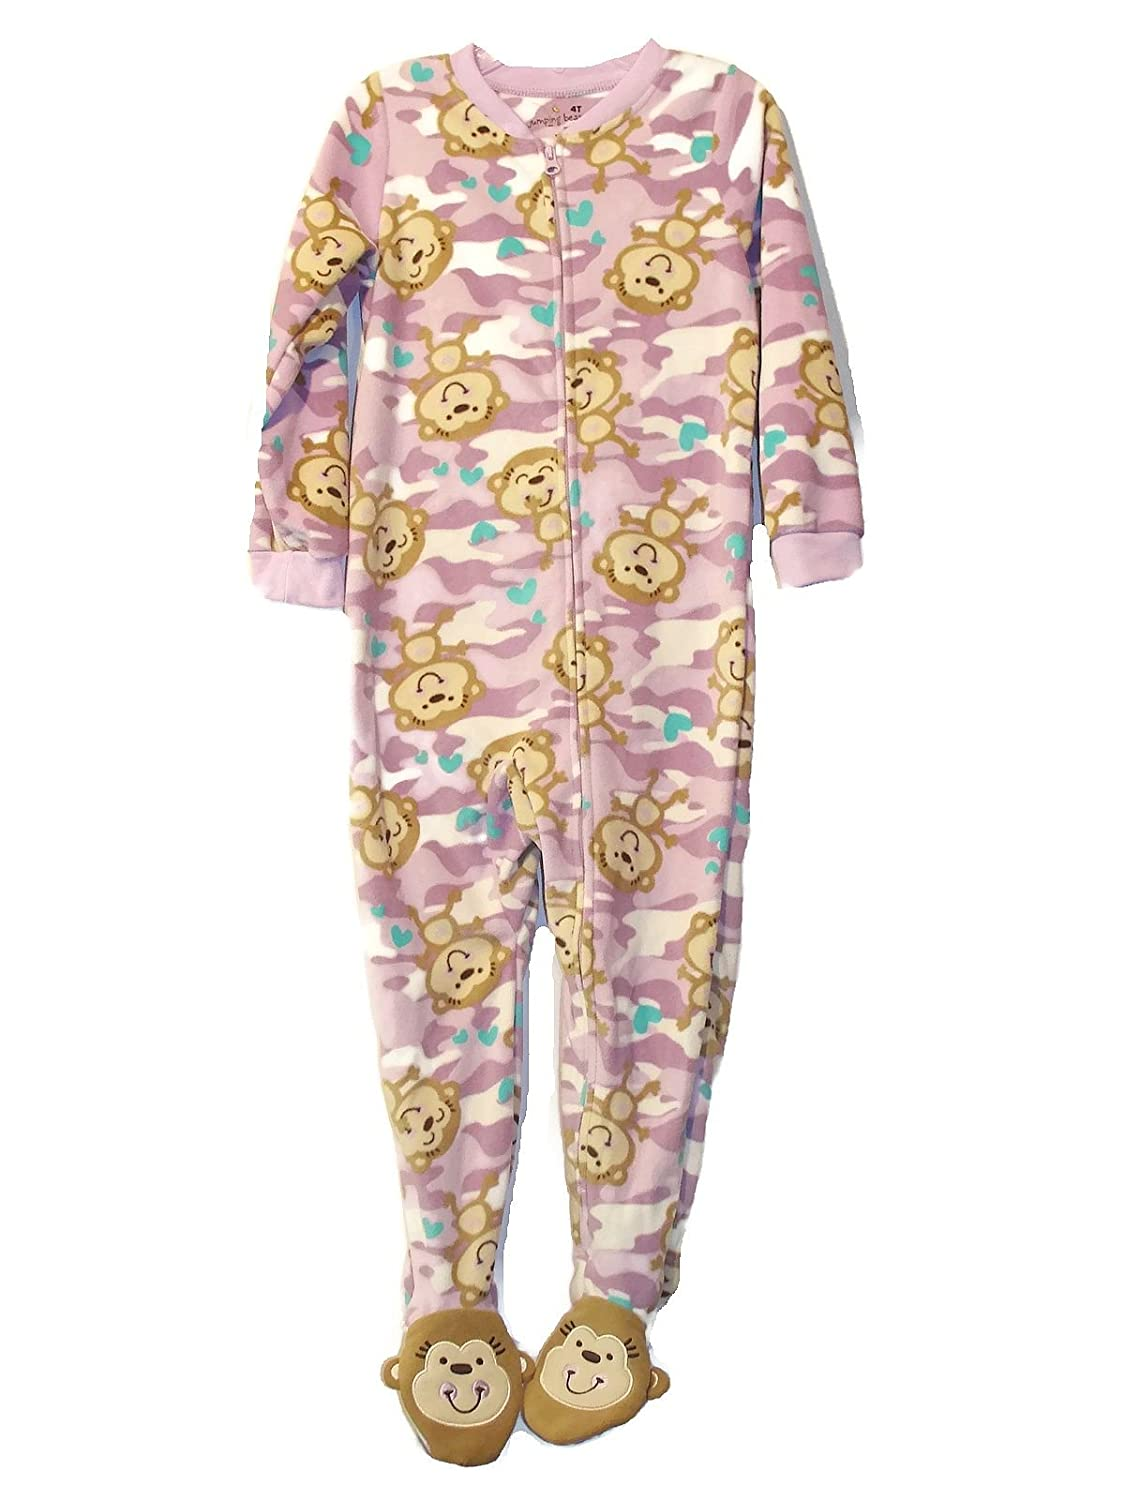 cc71de140 Amazon.com  Jumping Beans Toddler Girl s 4T Purple Camouflage Monkey ...